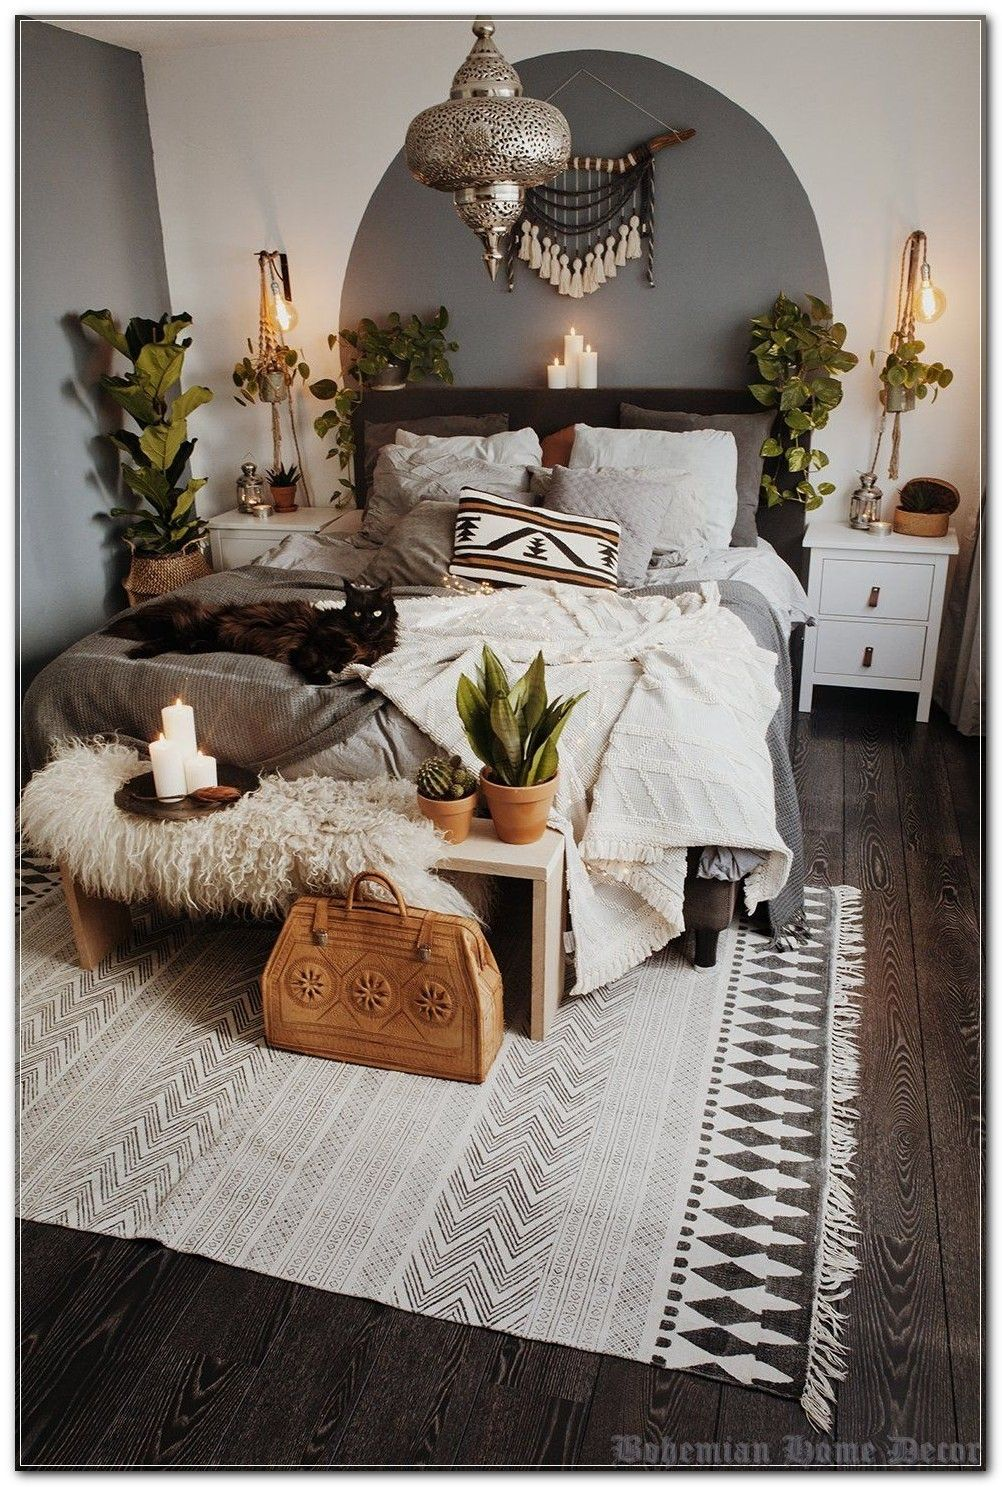 Bohemian Home Decor And Love – How They Are The Same